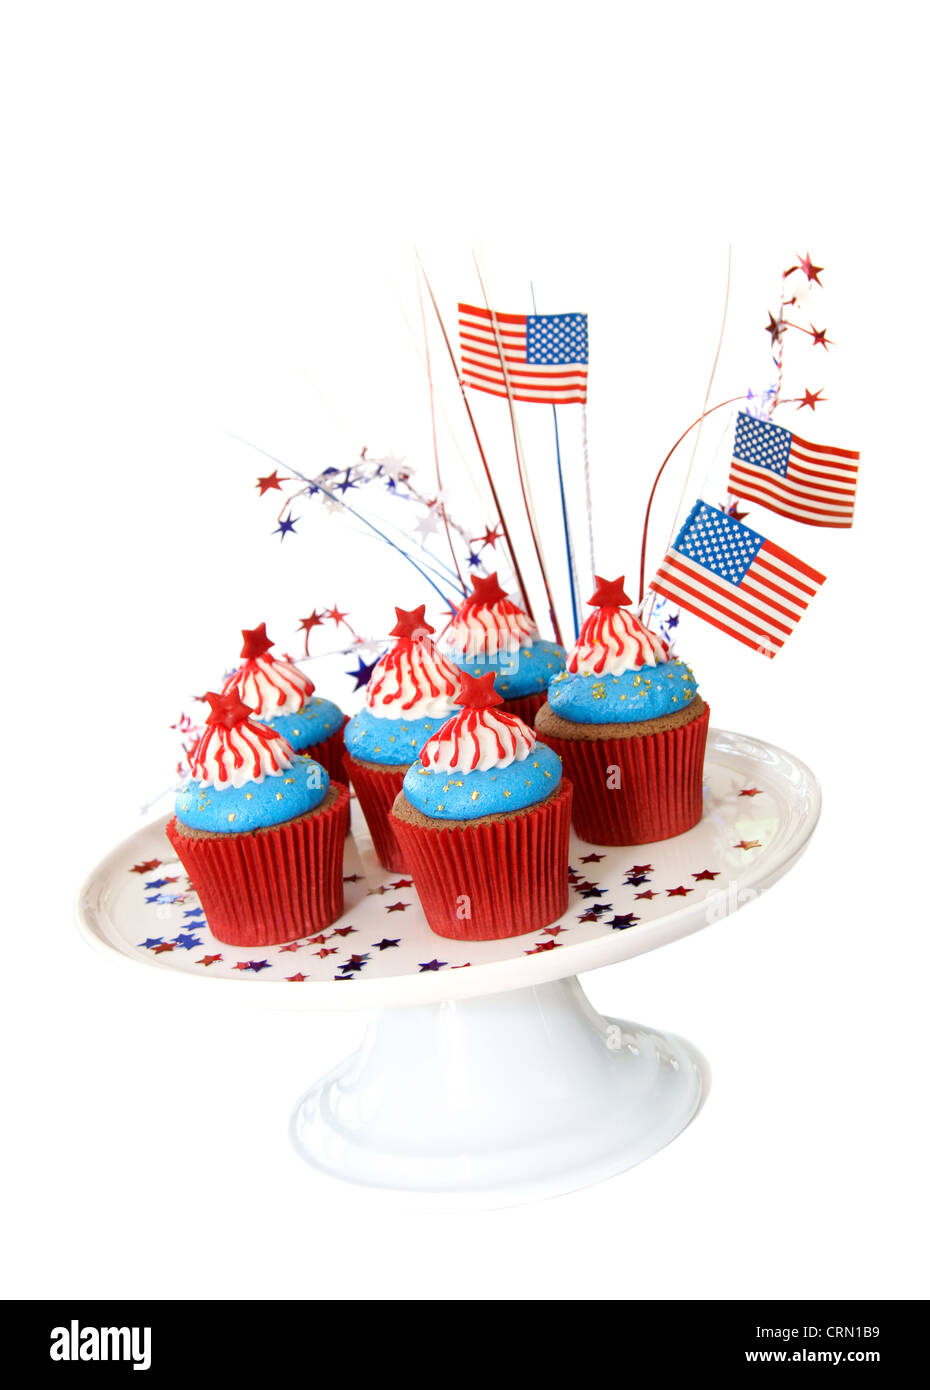 Cupcakes with American patriotic theme for 4th of July celebration and other events in America. - Stock Image